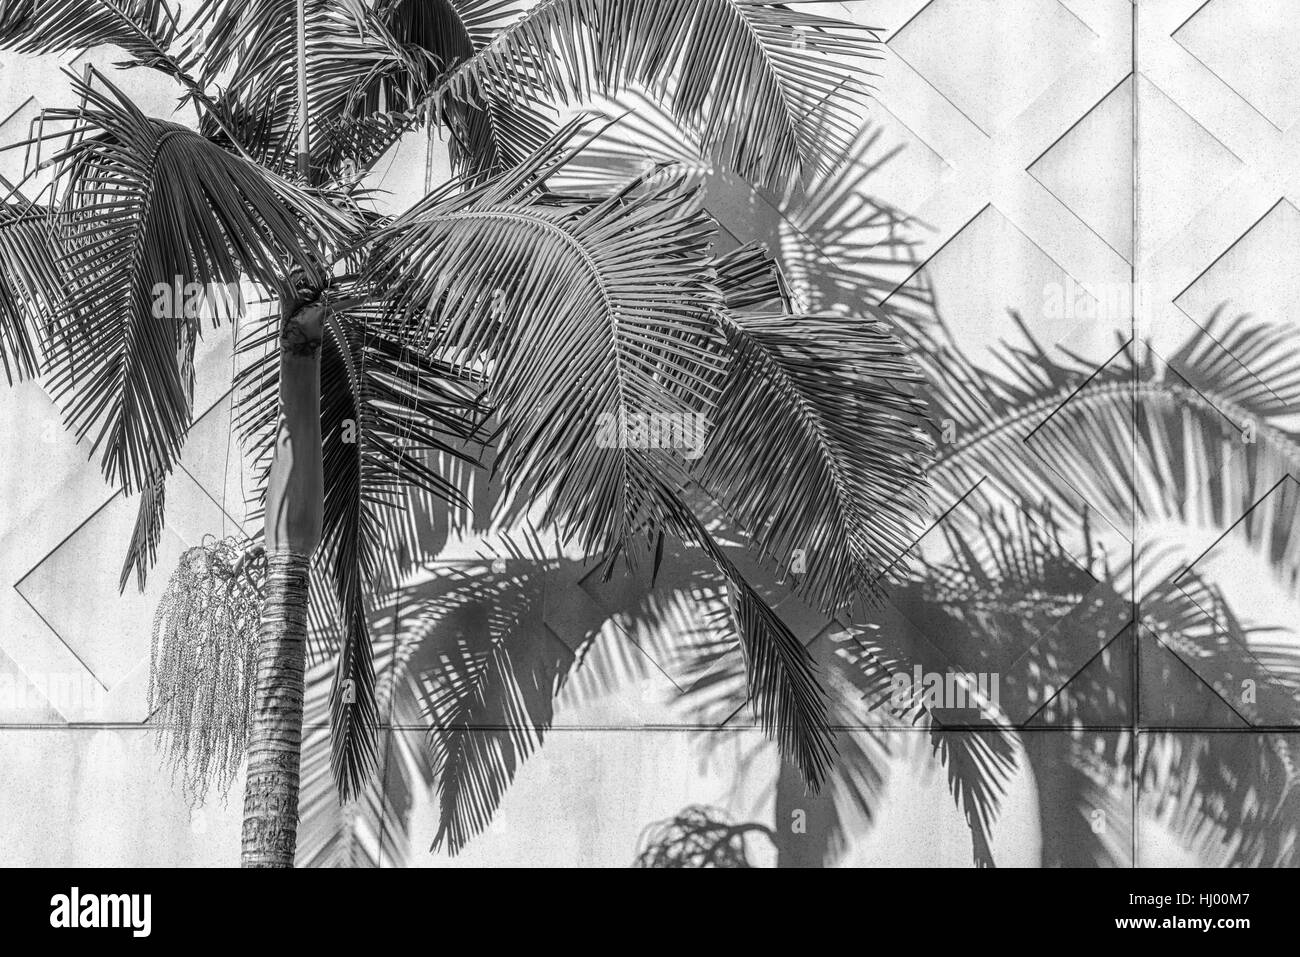 Palm tree and shadow cast against a concrete wall, urban geometry. - Stock Image